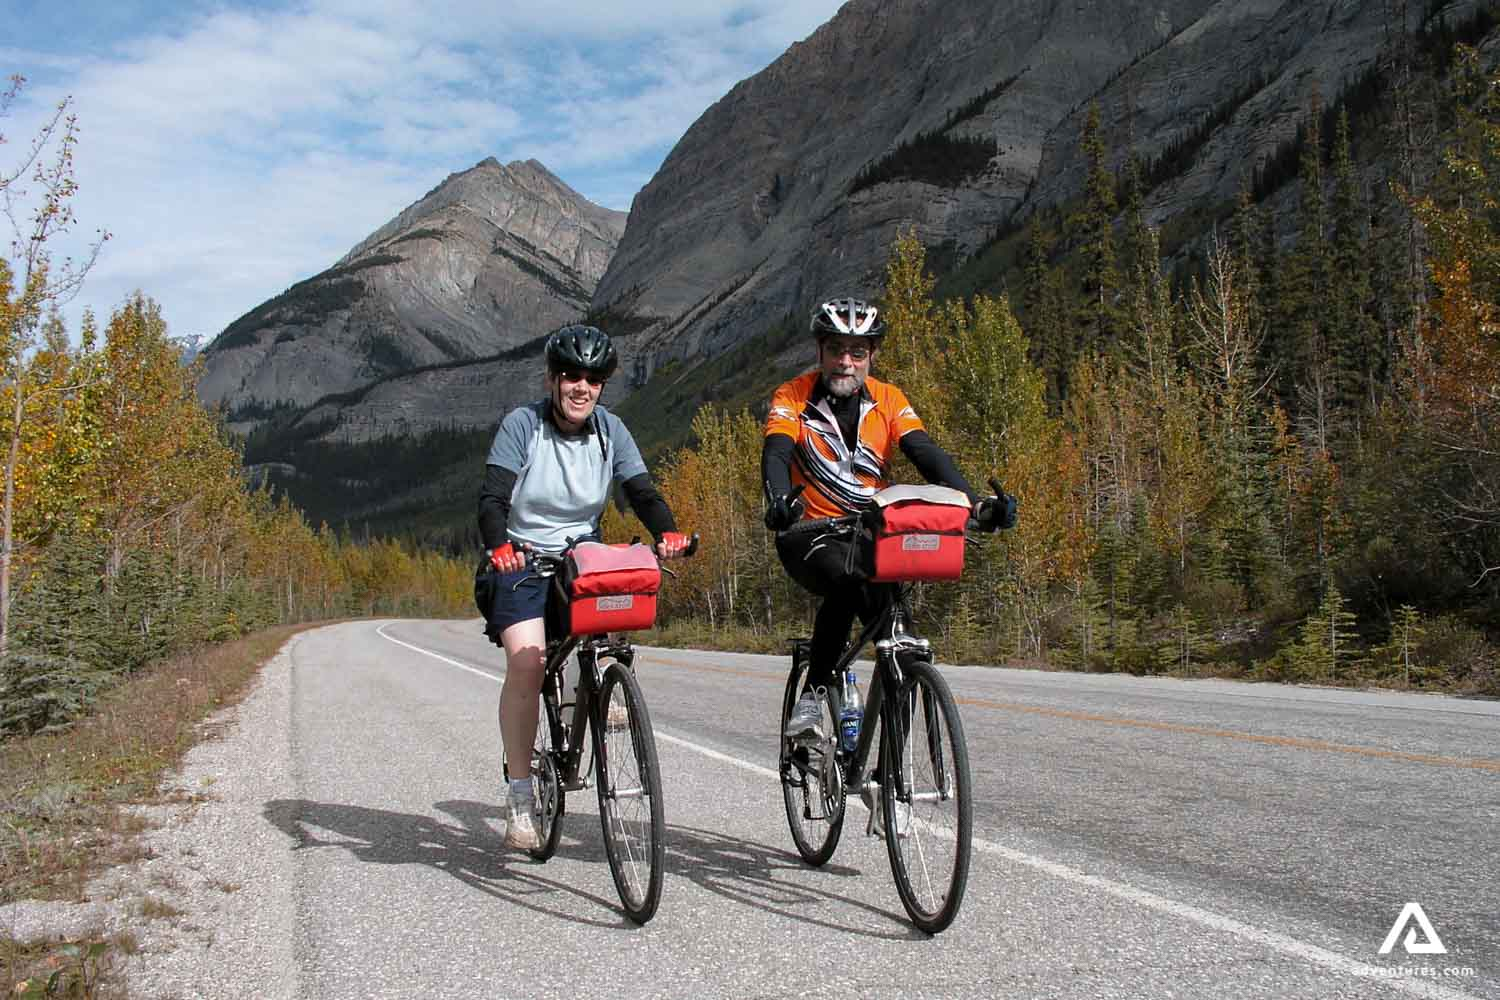 Couple on a cycle tour in Canada